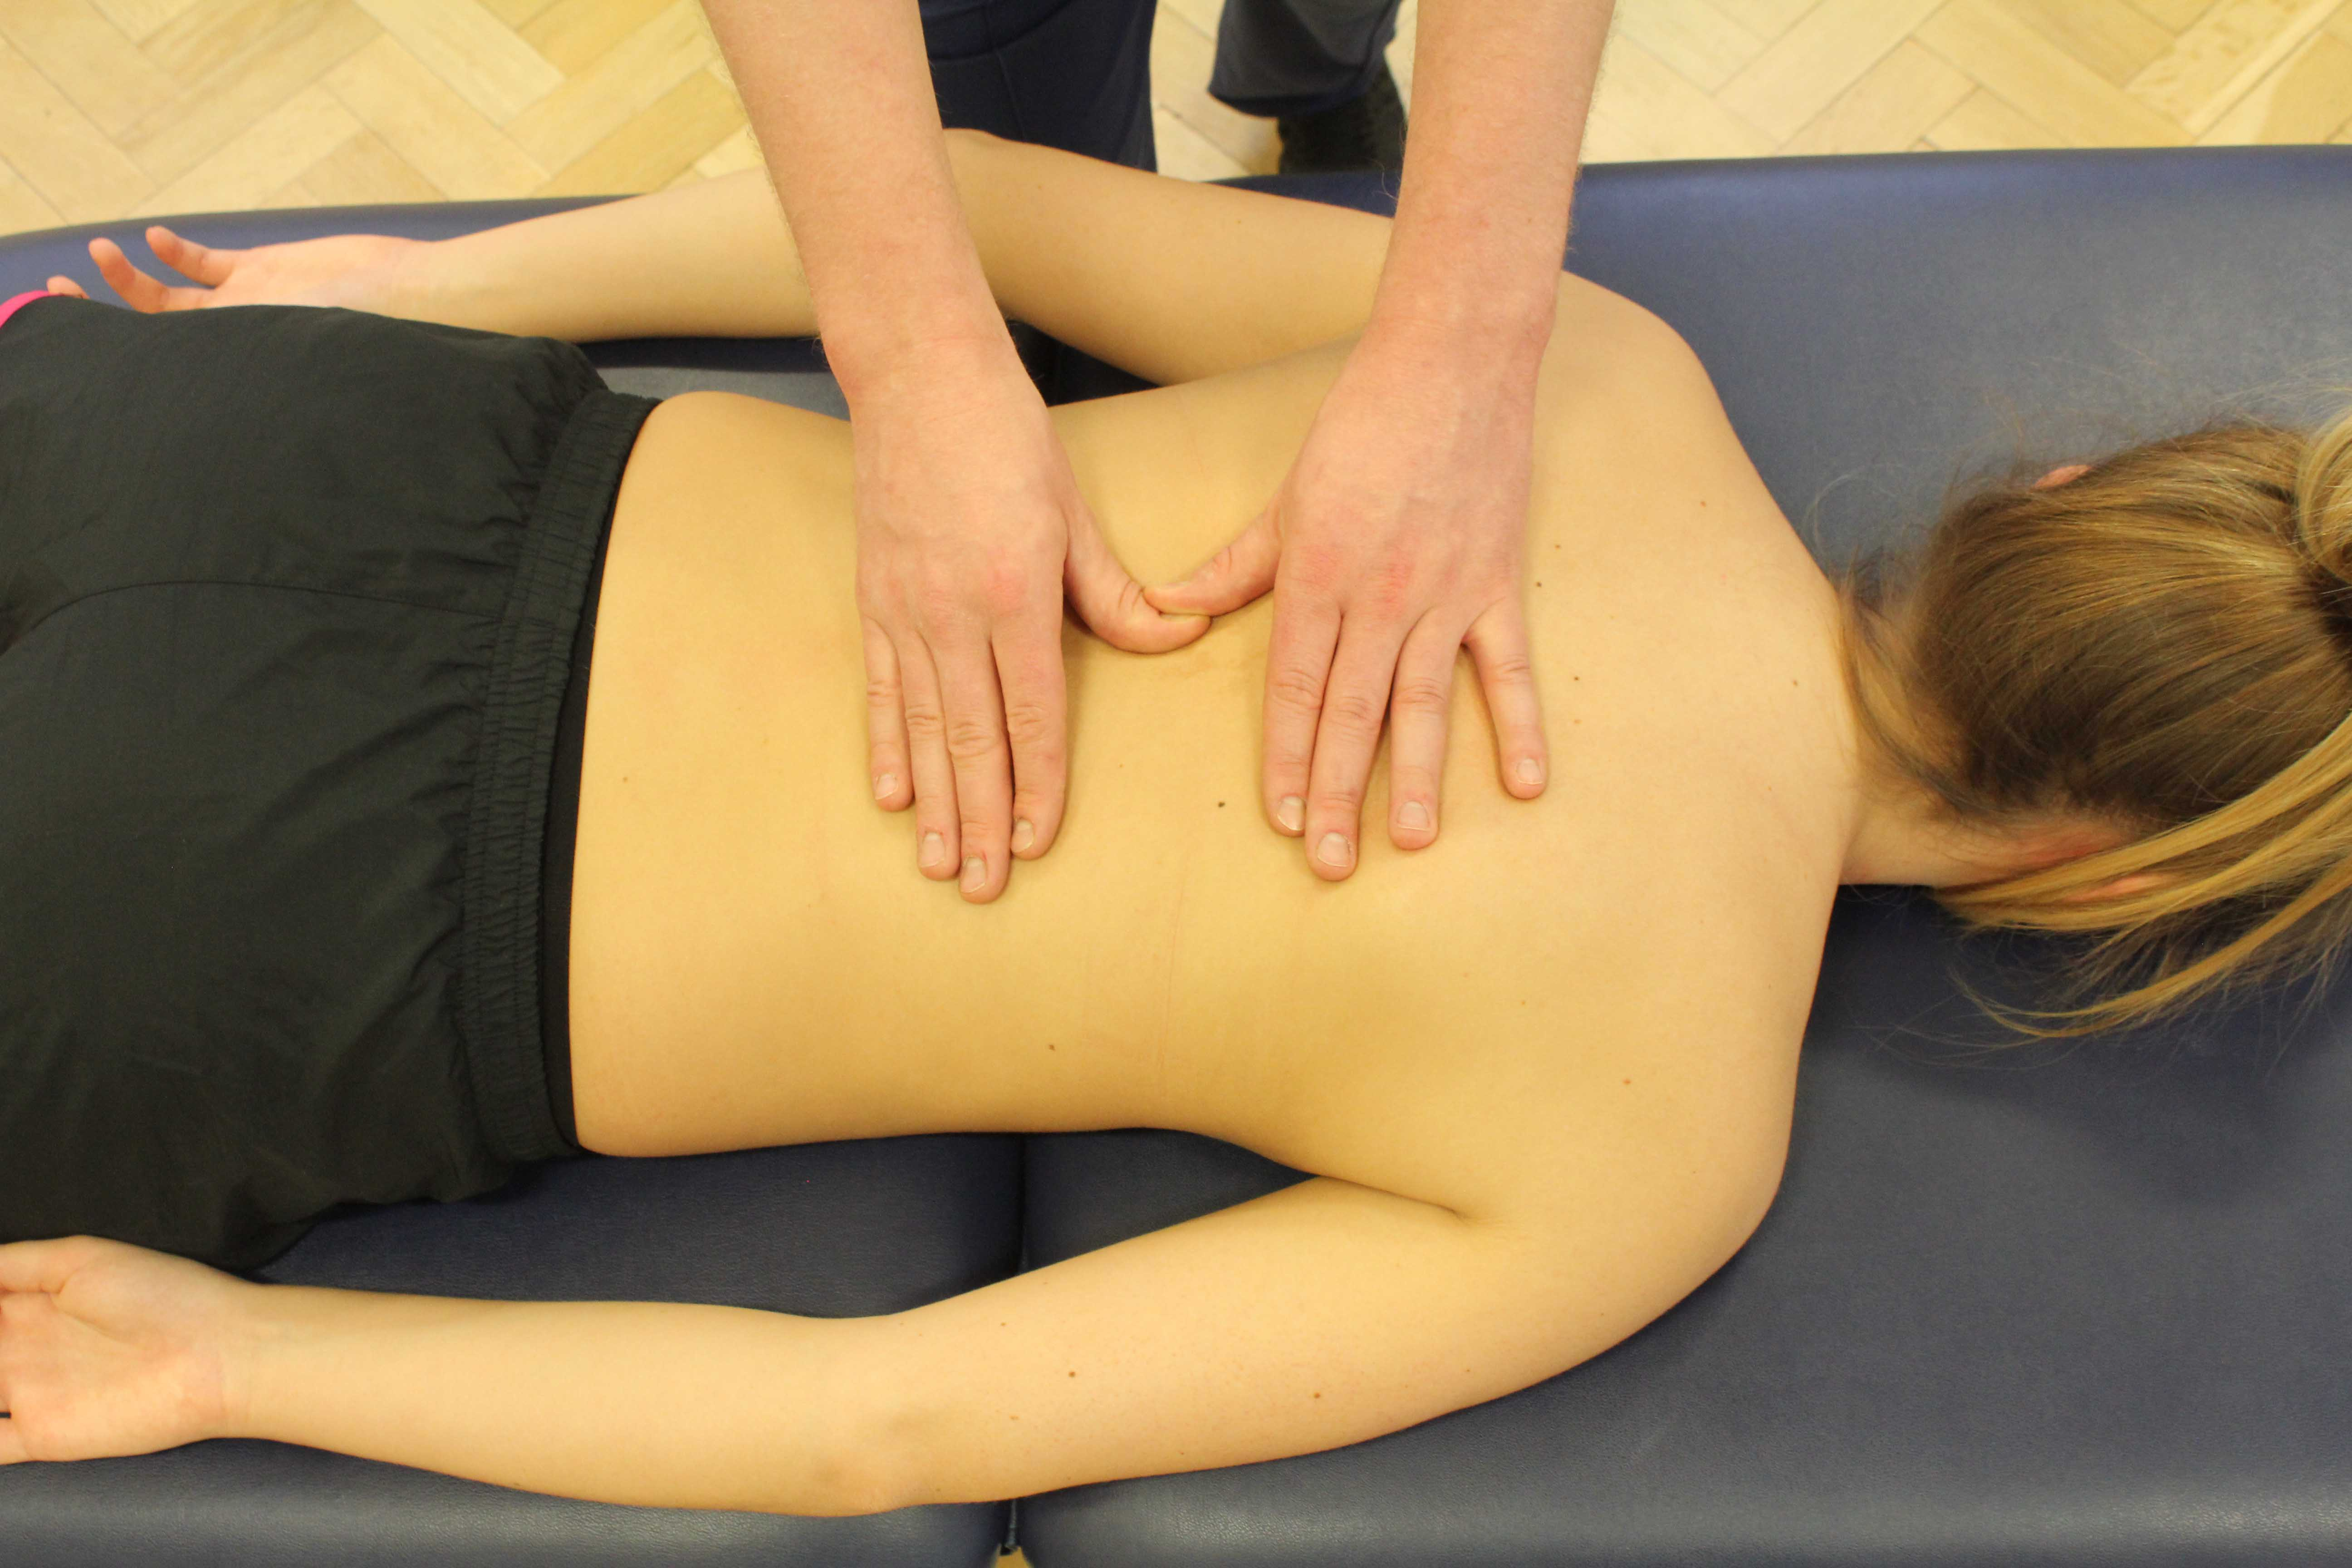 Mobilisations of the mid thoracic spine by experienced physiotherapist